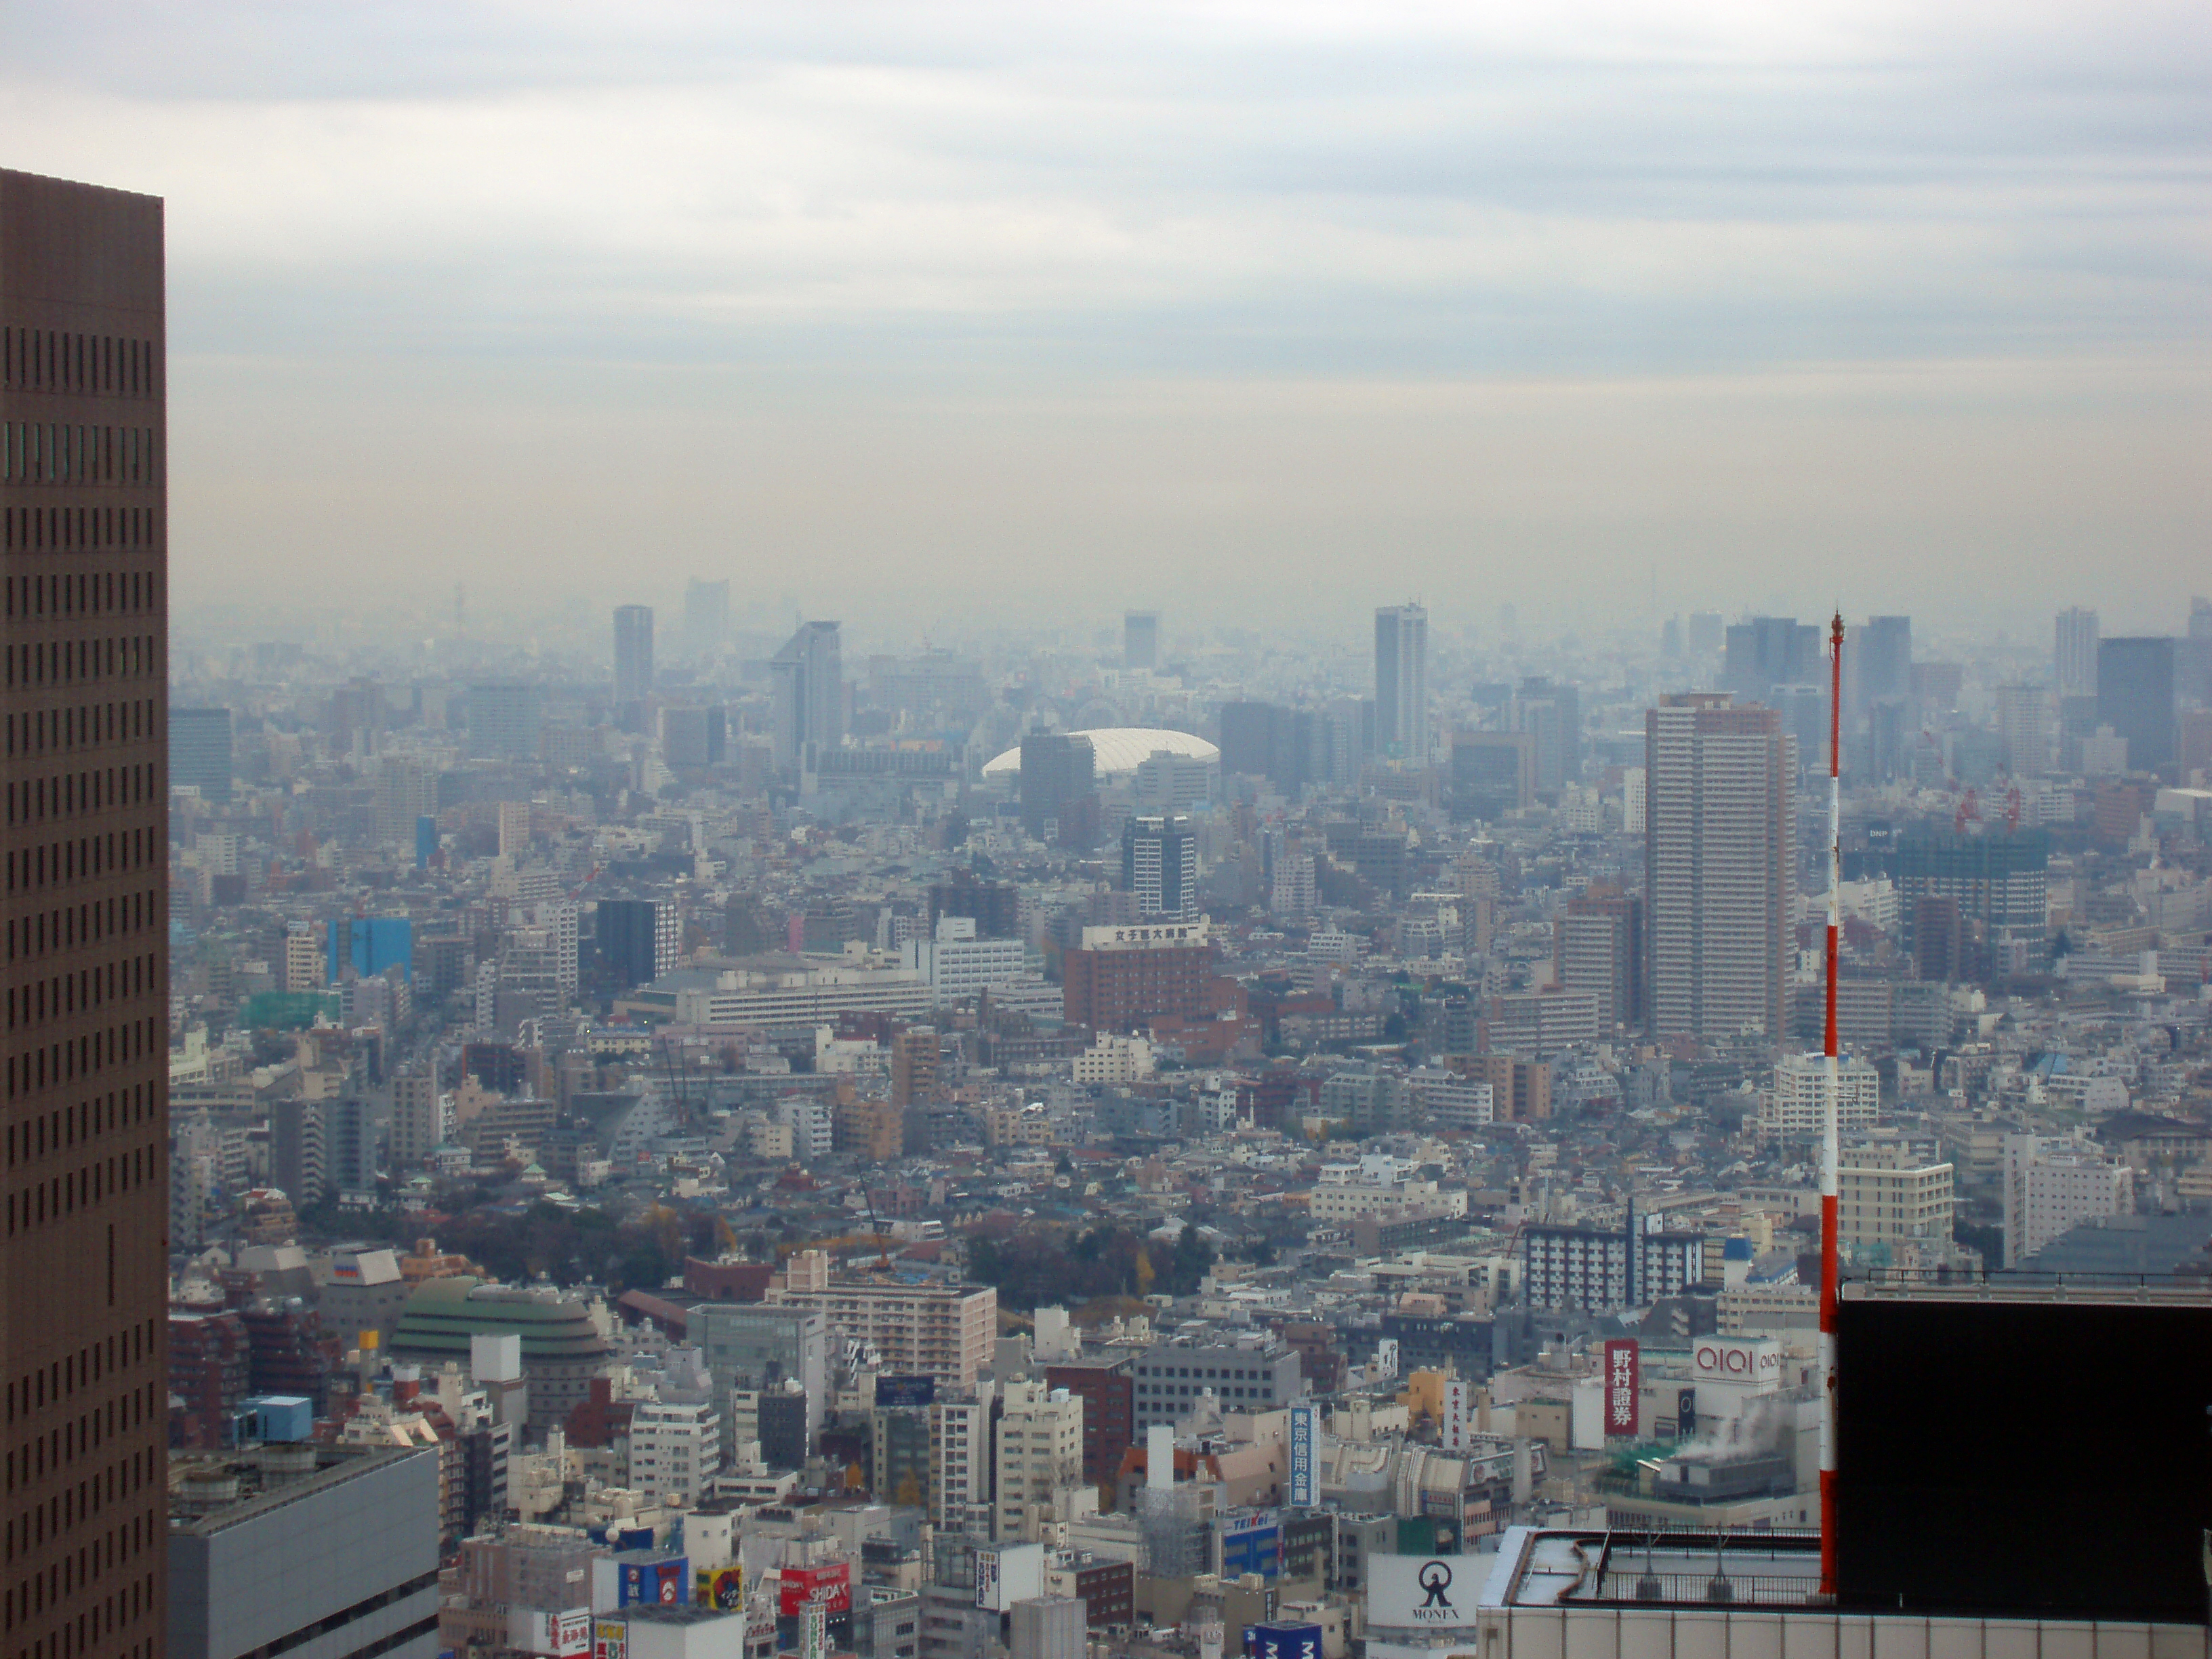 a sprawling panoramic view of buildings in metropolitan tokyo